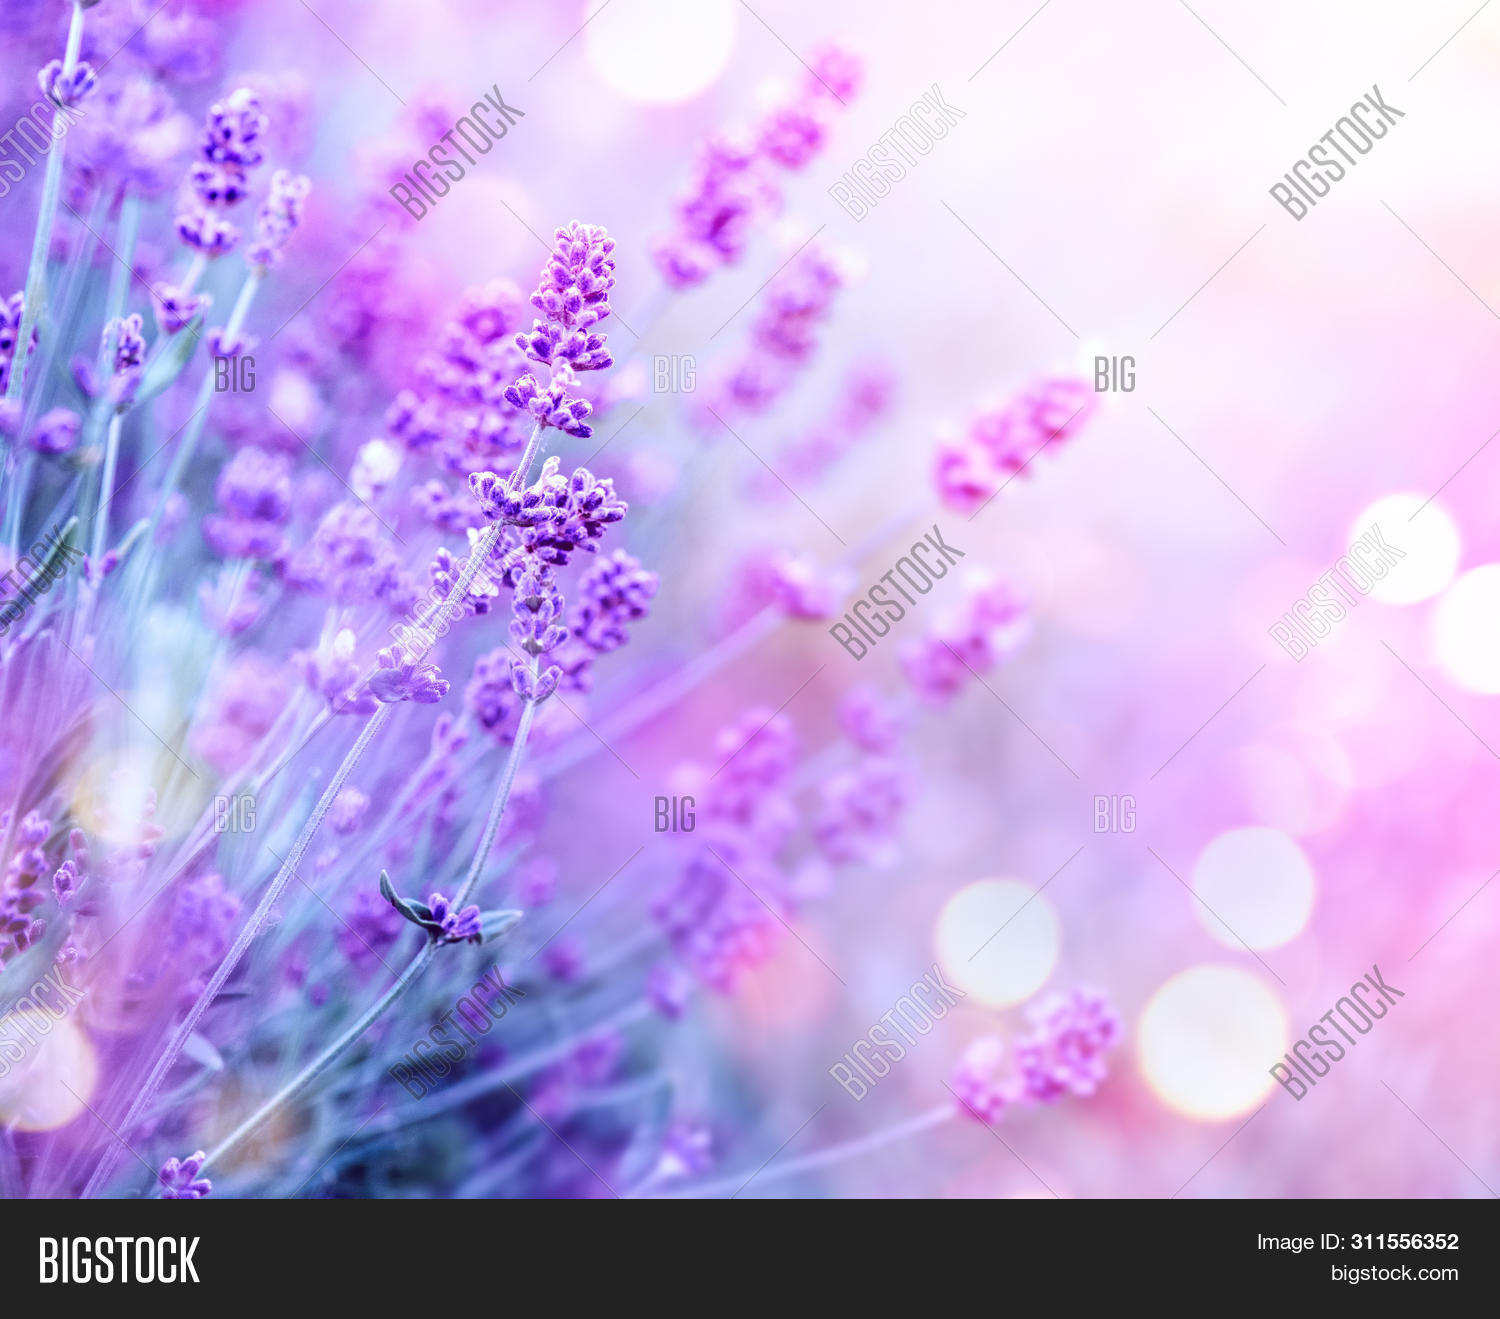 Lavender flower field, Blooming Violet fragrant lavender flowers. Growing Lavender swaying on wind o